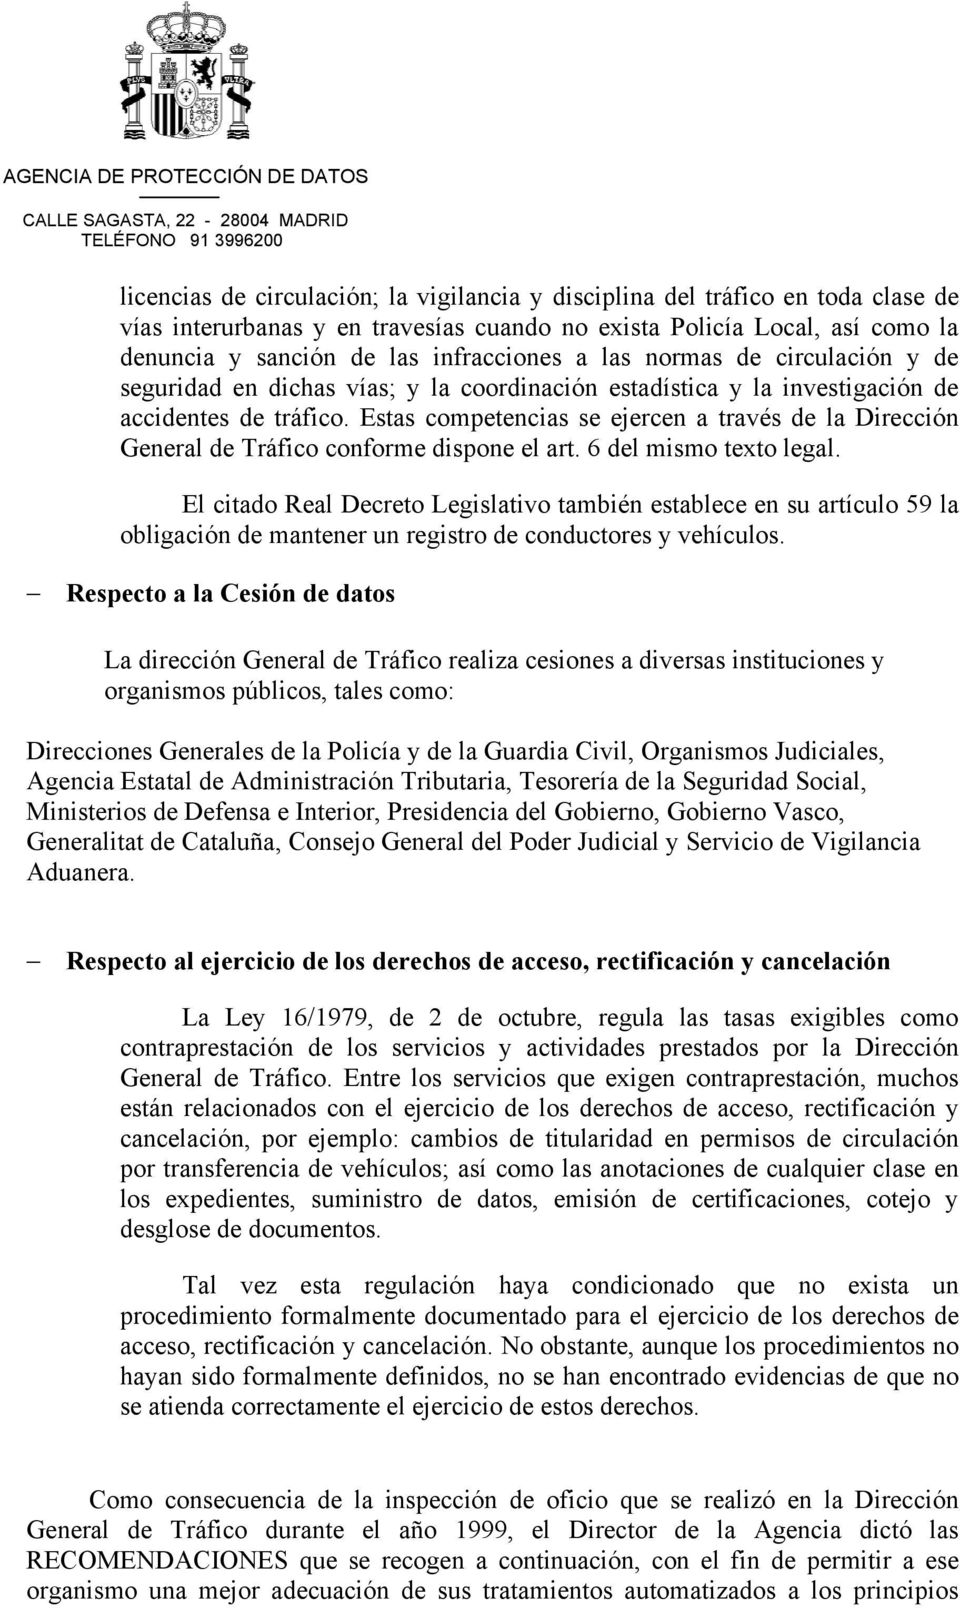 Estas competencias se ejercen a través de la Dirección General de Tráfico conforme dispone el art. 6 del mismo texto legal.